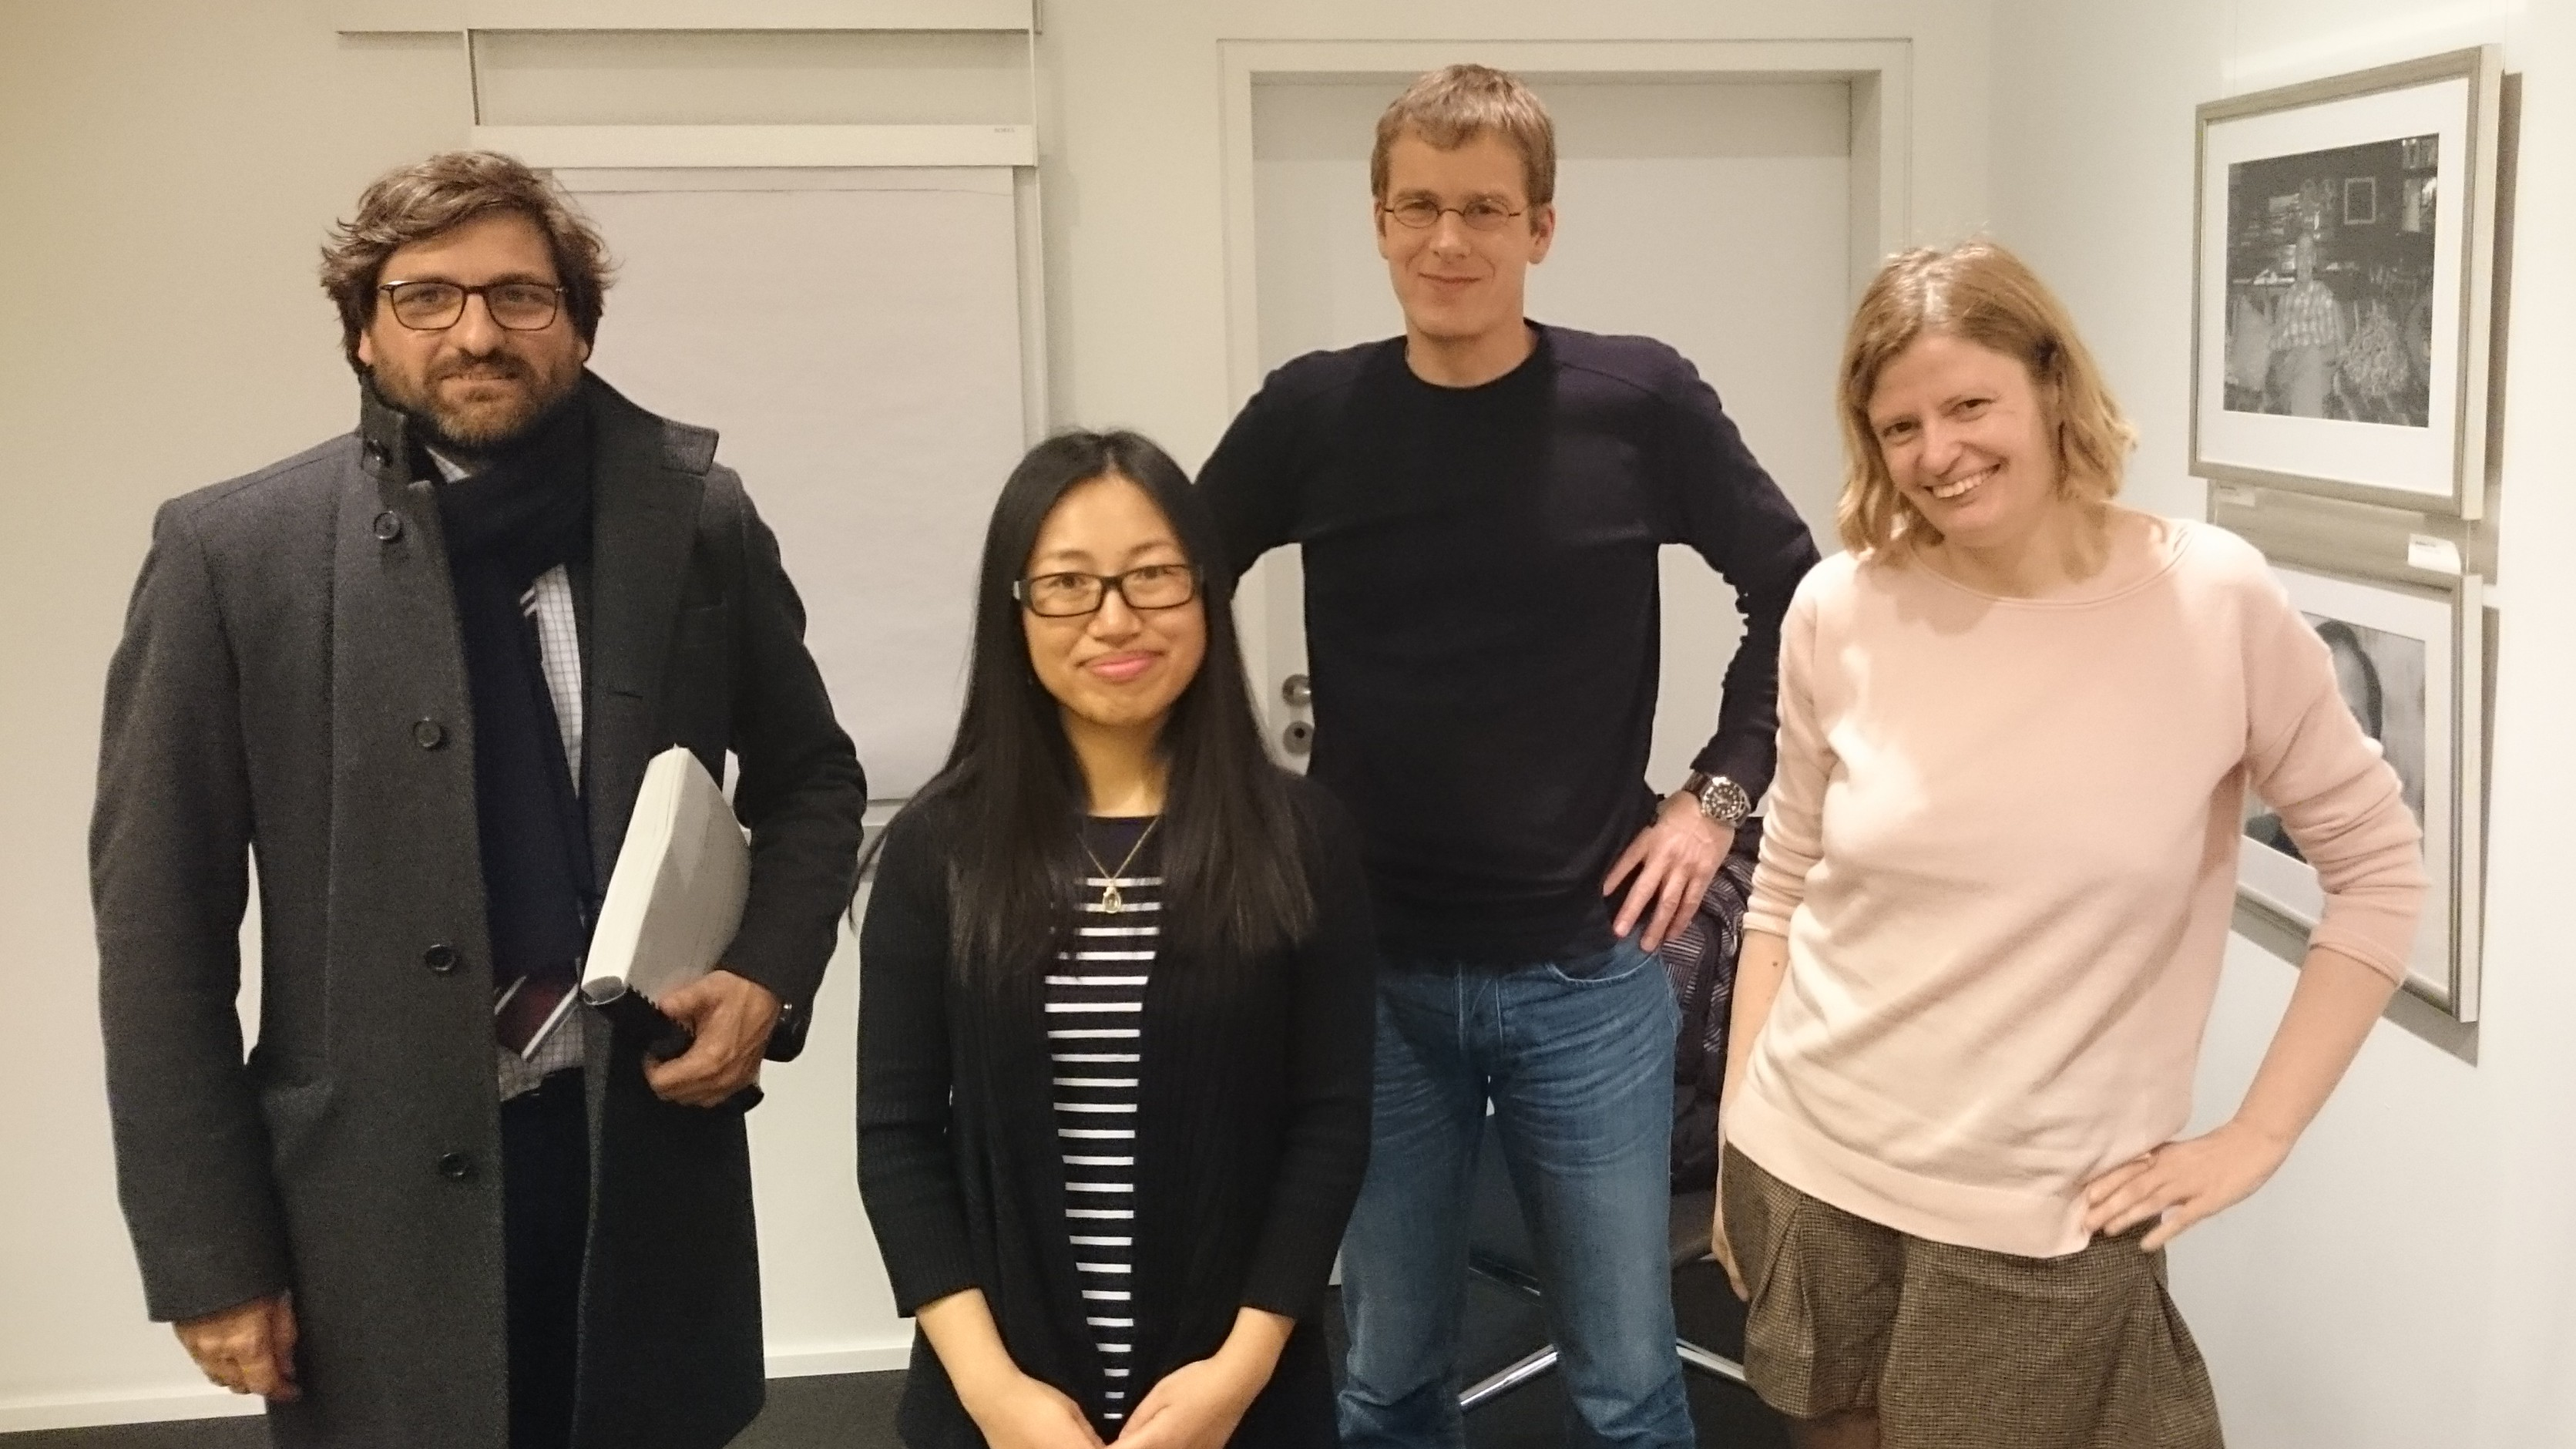 Phd thesis defended